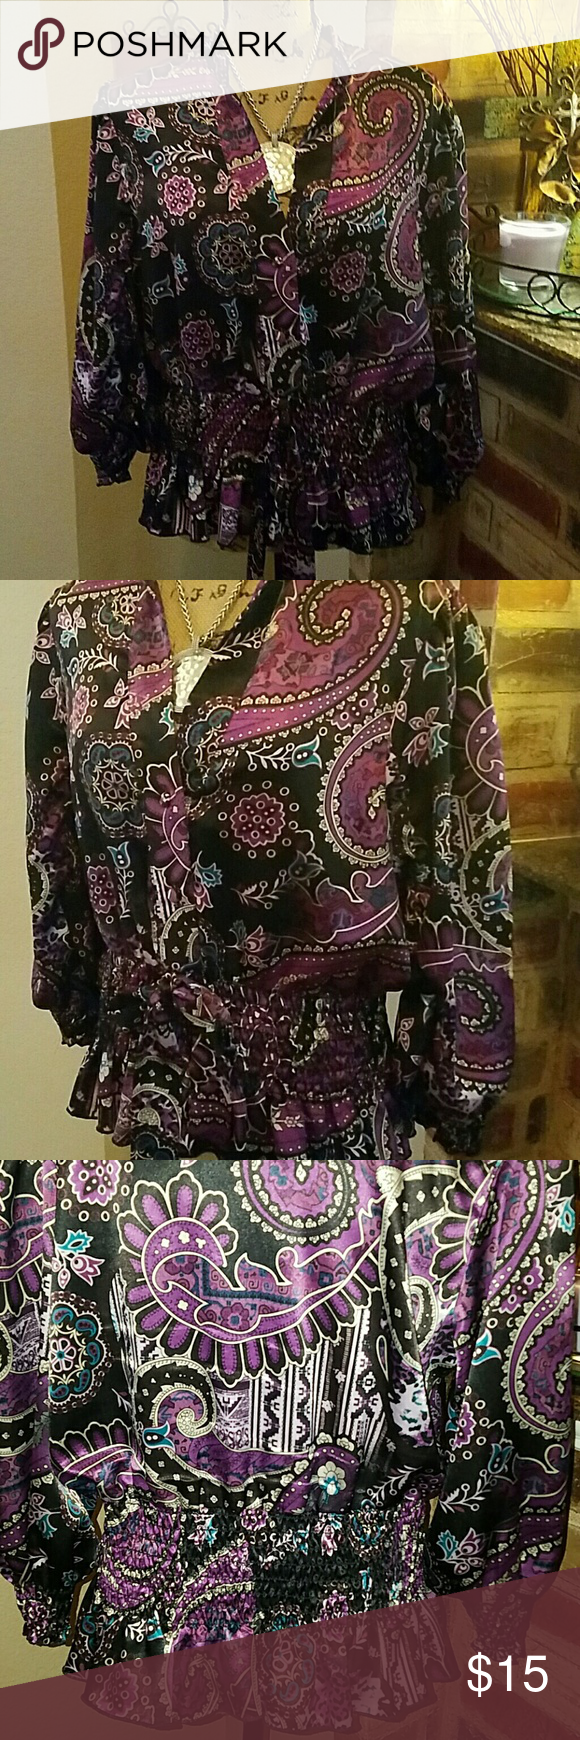 Beautiful Boho chic style top This is a beautiful vintage boho floral print top. It's gathers and has elastic at the hip area with a ruffled flare. The arms also have a gathered elastic at the cuff. It is 100% polyester and in excellent excellent condition. Great for fall with a black skirt or a pair of black slacks! Design works  Tops Blouses